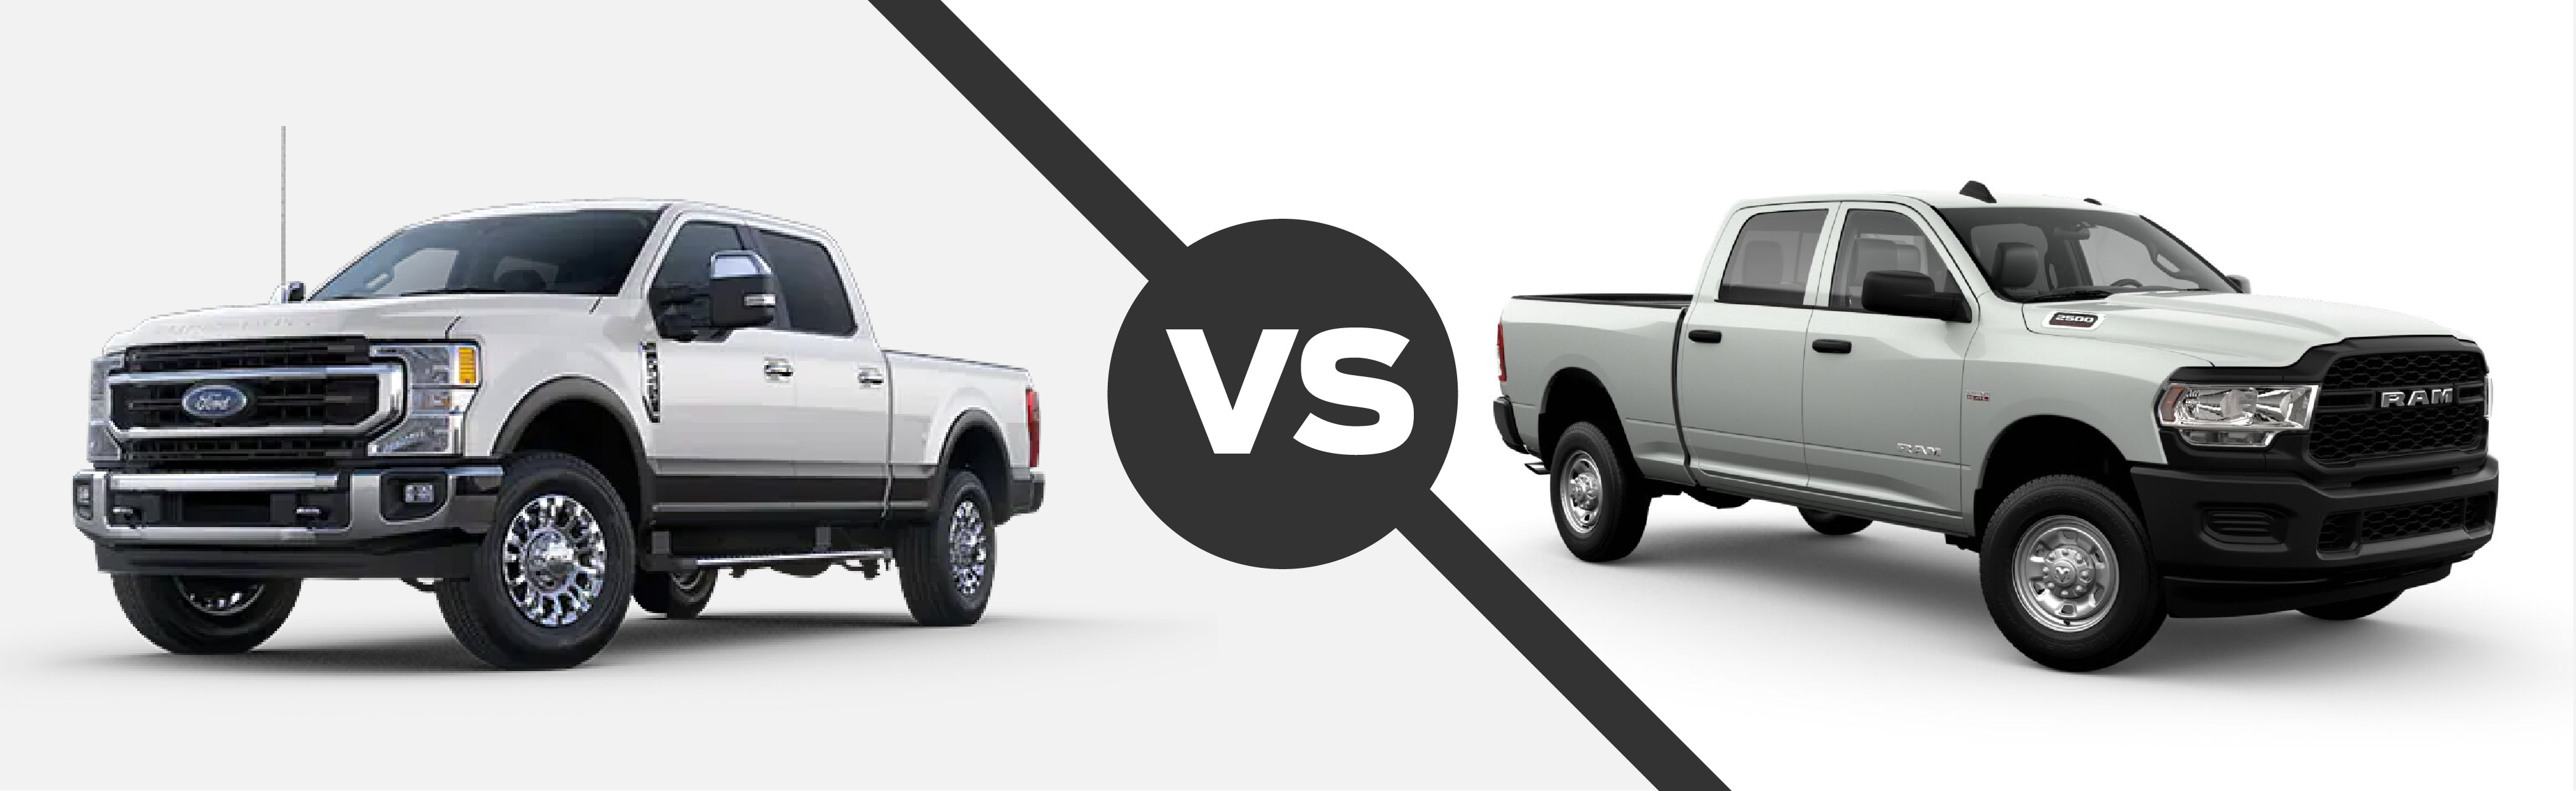 2021 Ford Super Duty vs 2021 Ram 2500